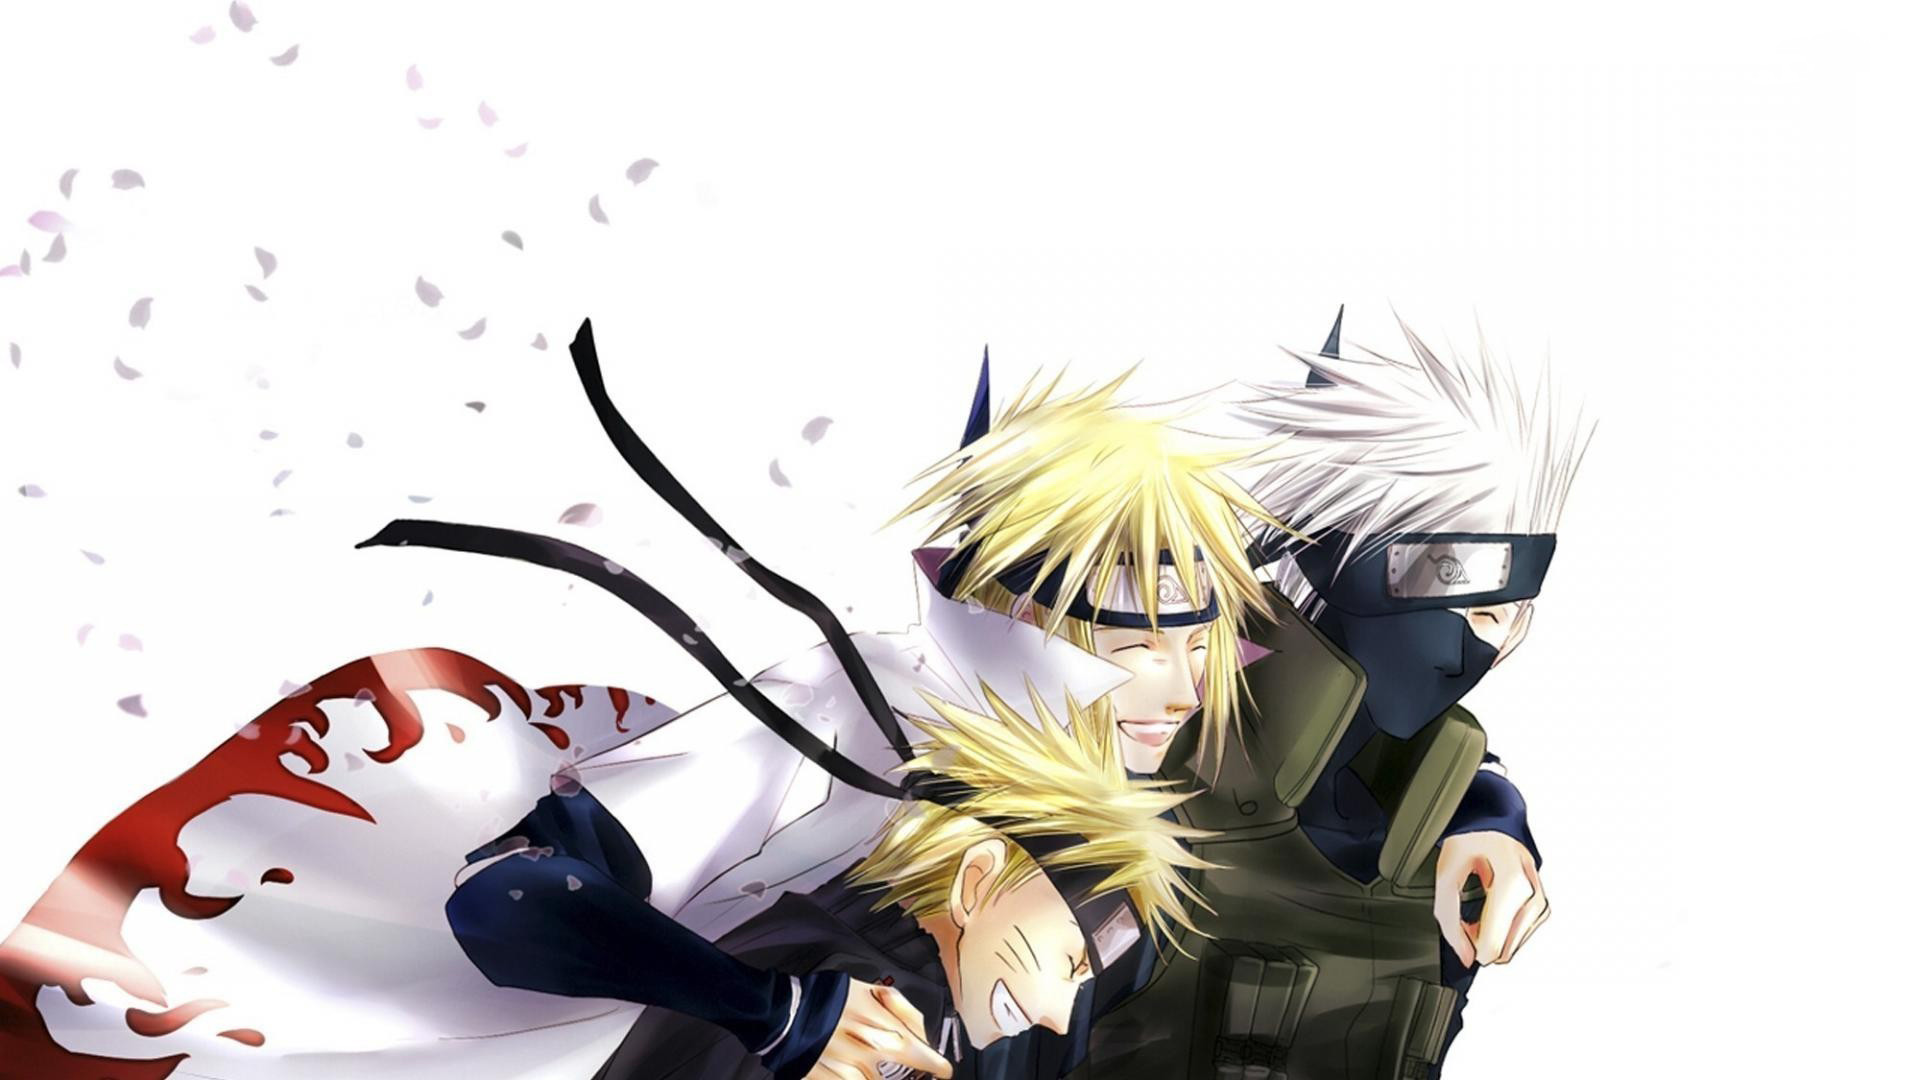 1920x1080 Full HD p Naruto Wallpapers HD Desktop Backgrounds x